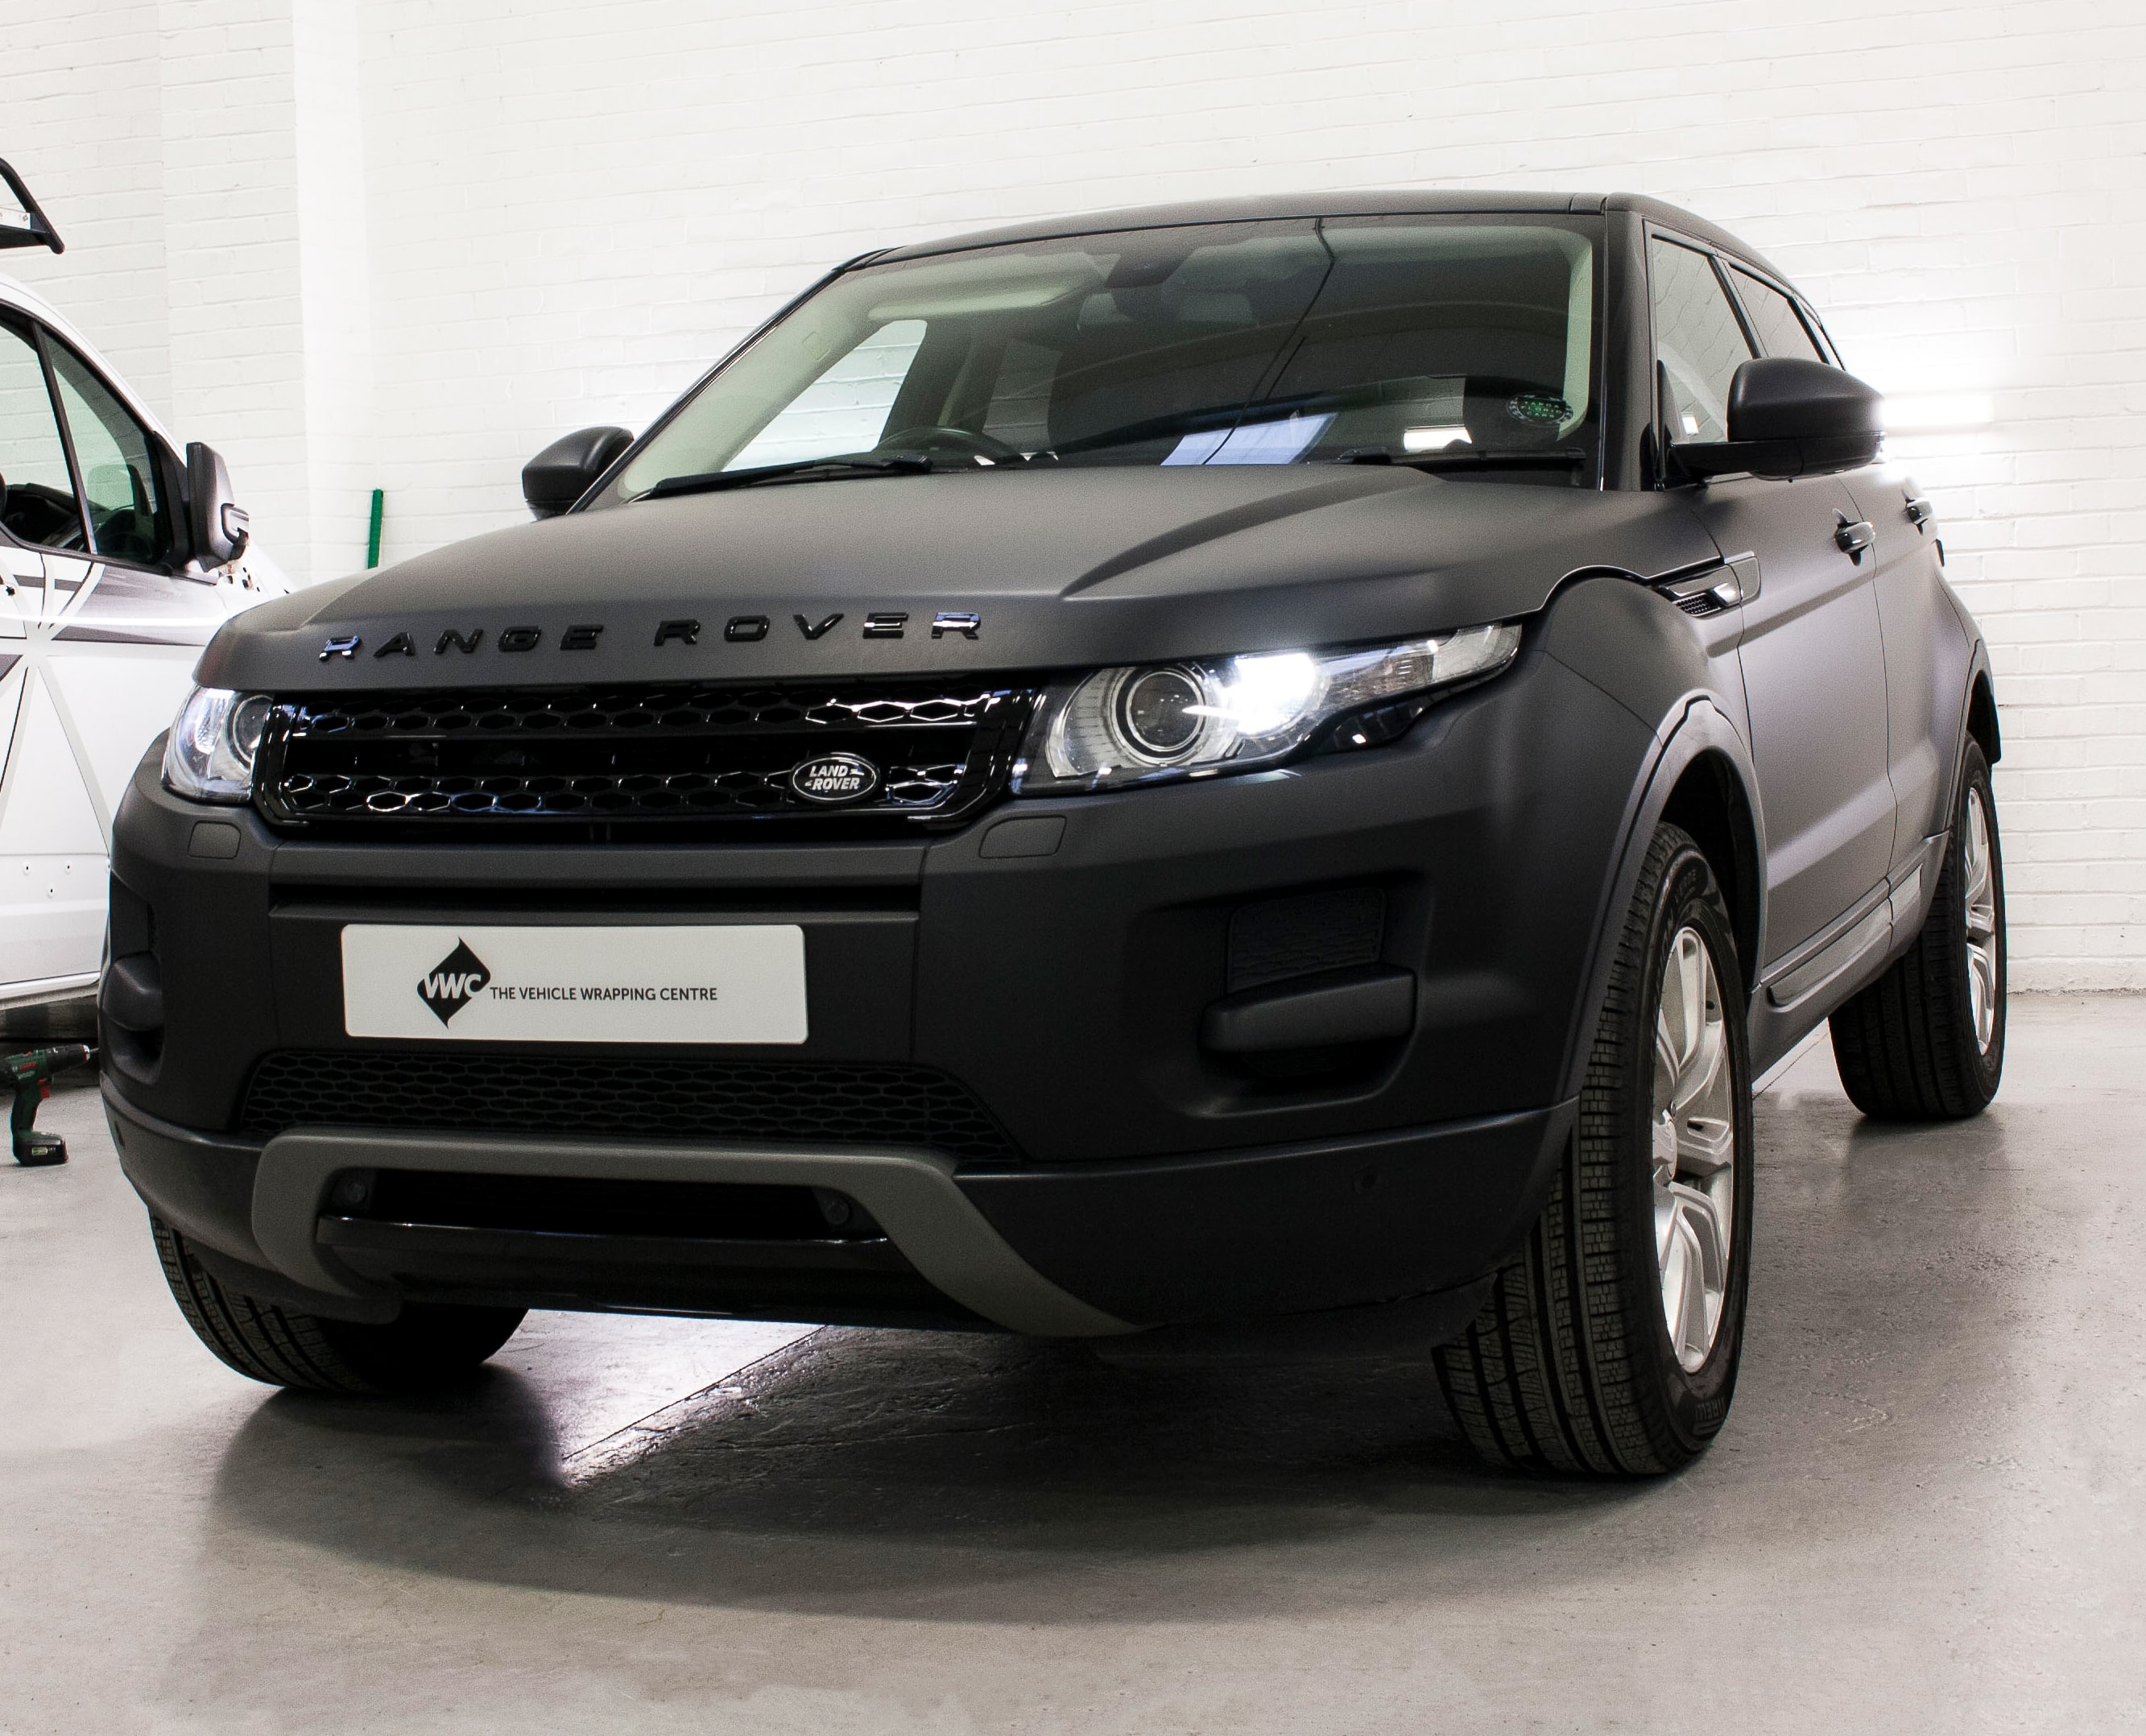 Land Rover Wrap Examples - The Vehicle Wrapping Centre